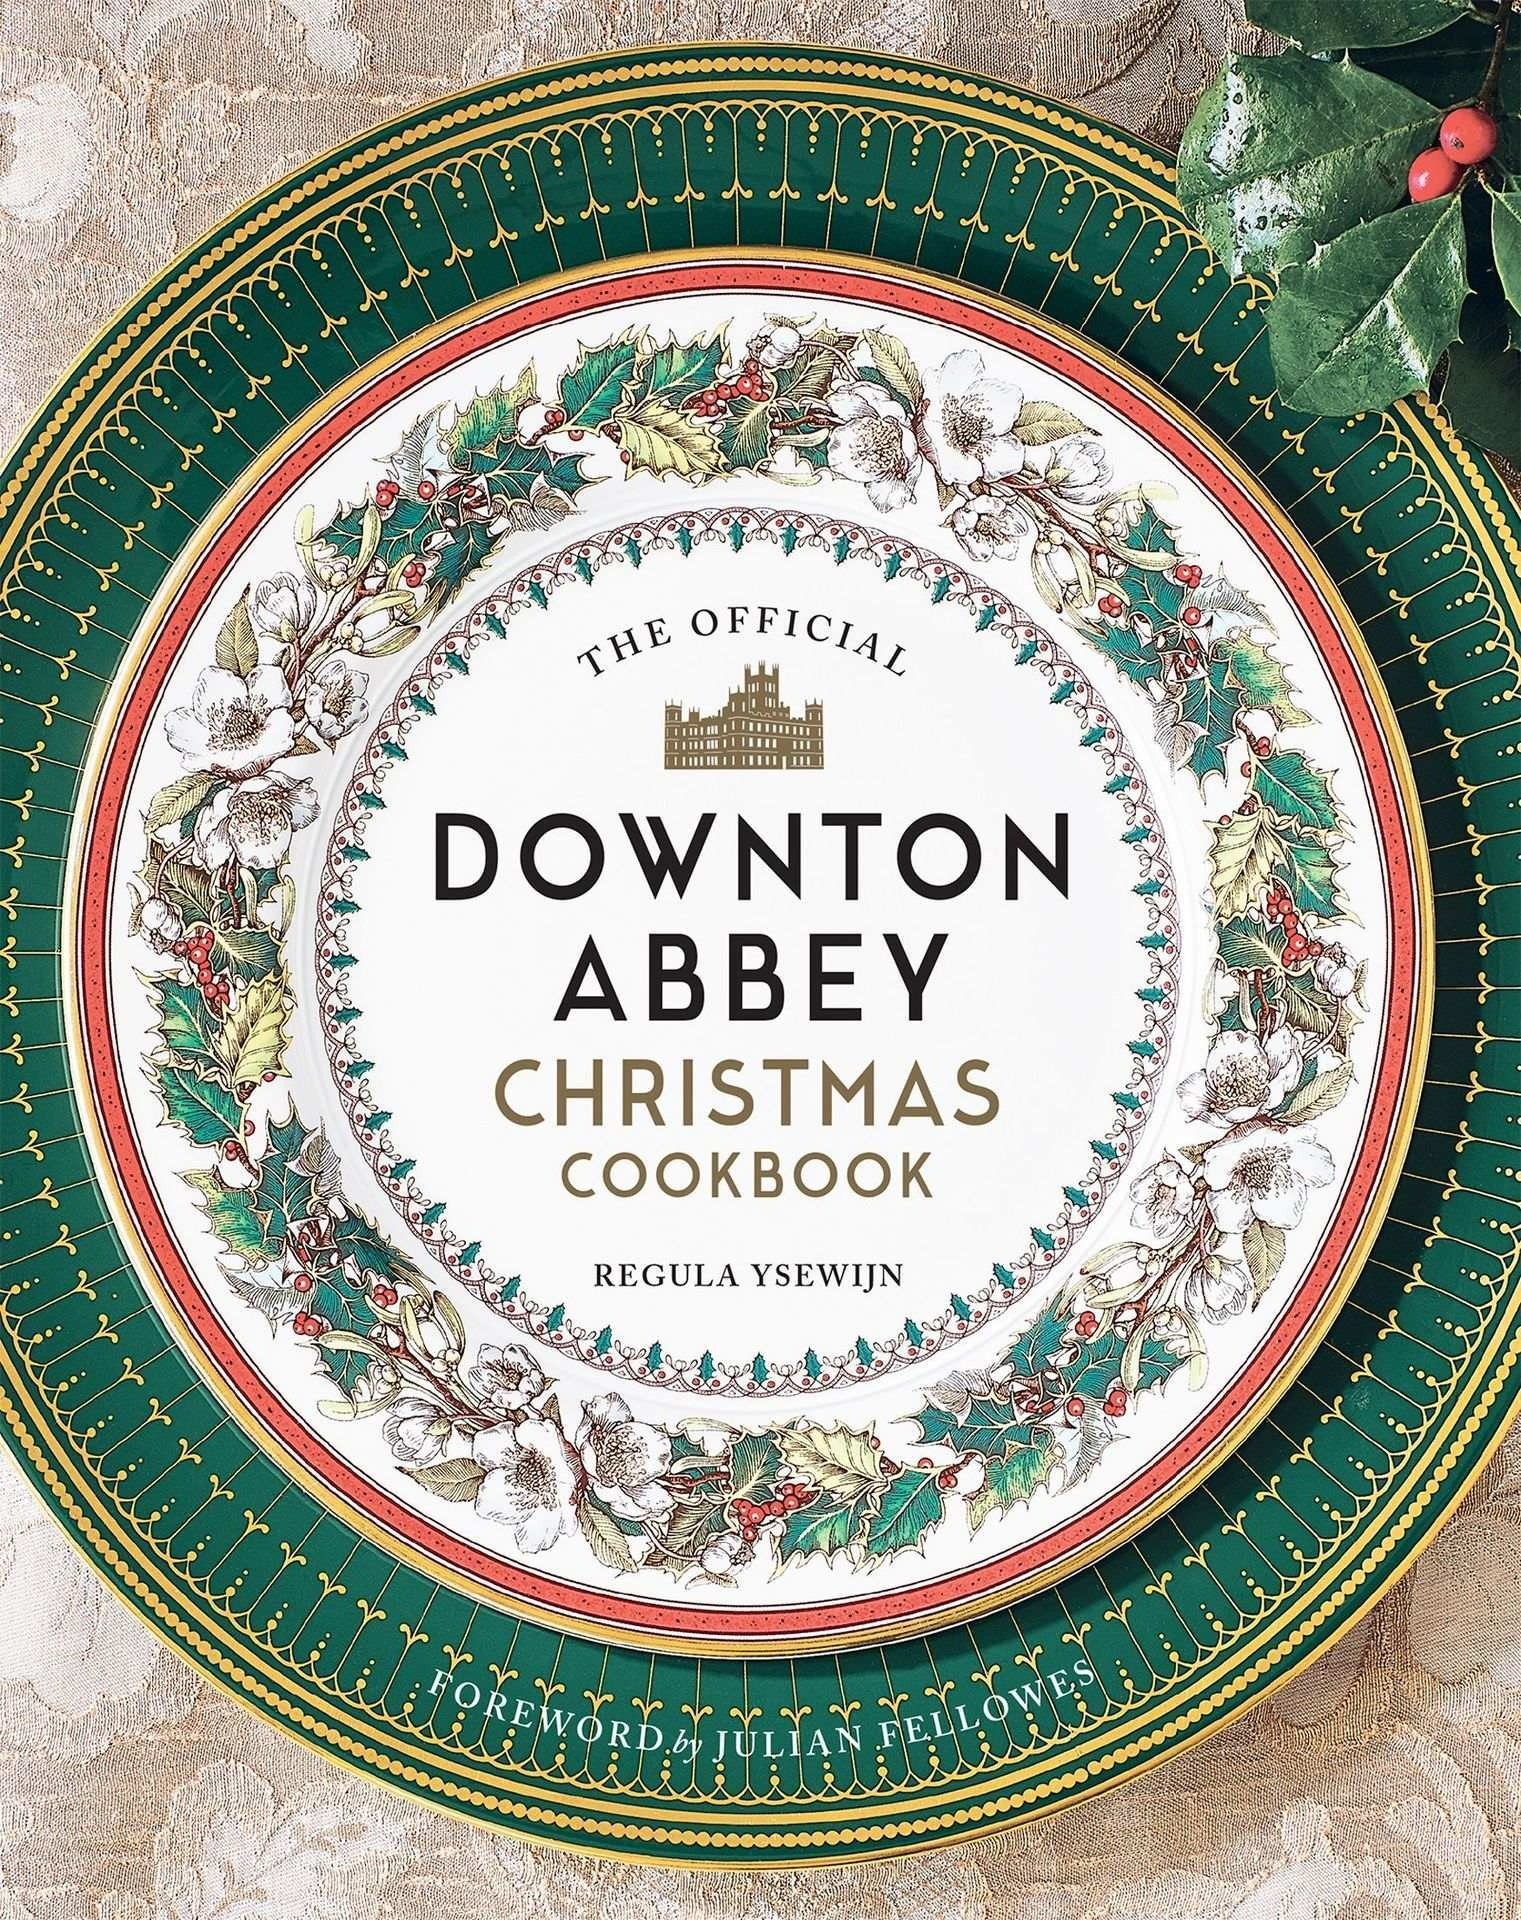 """Cover of """"The Official Downton Abbey Christmas Cookbook"""" by Weldon Owen & Regula Ysewijn"""